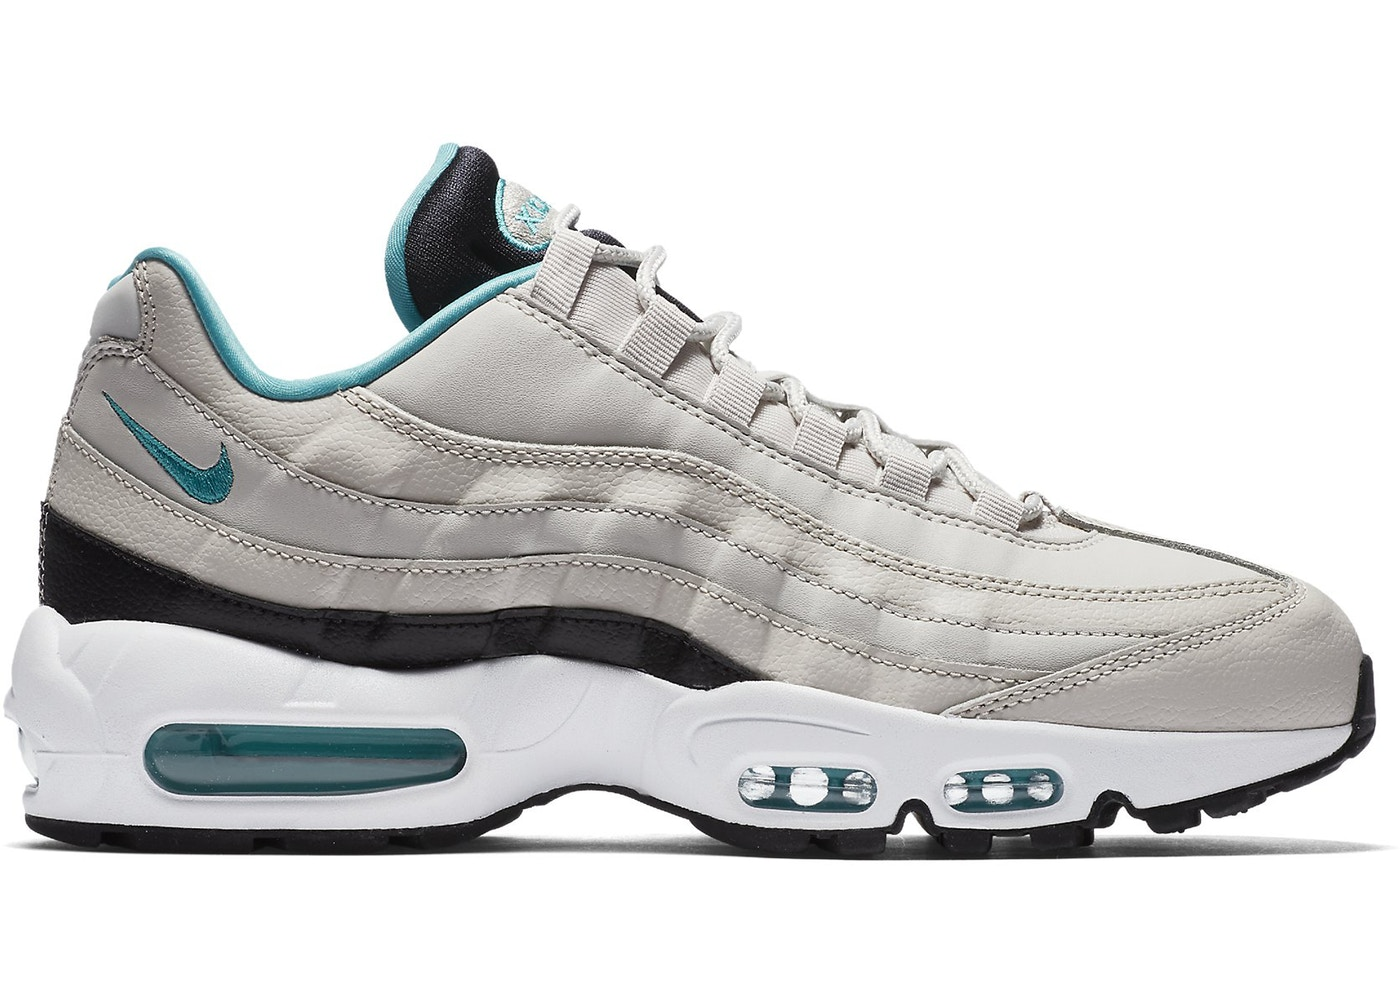 4e4badf5be Sell. or Ask. Size 9. View All Bids. Air Max 95 Light Bone Sport Turqoise